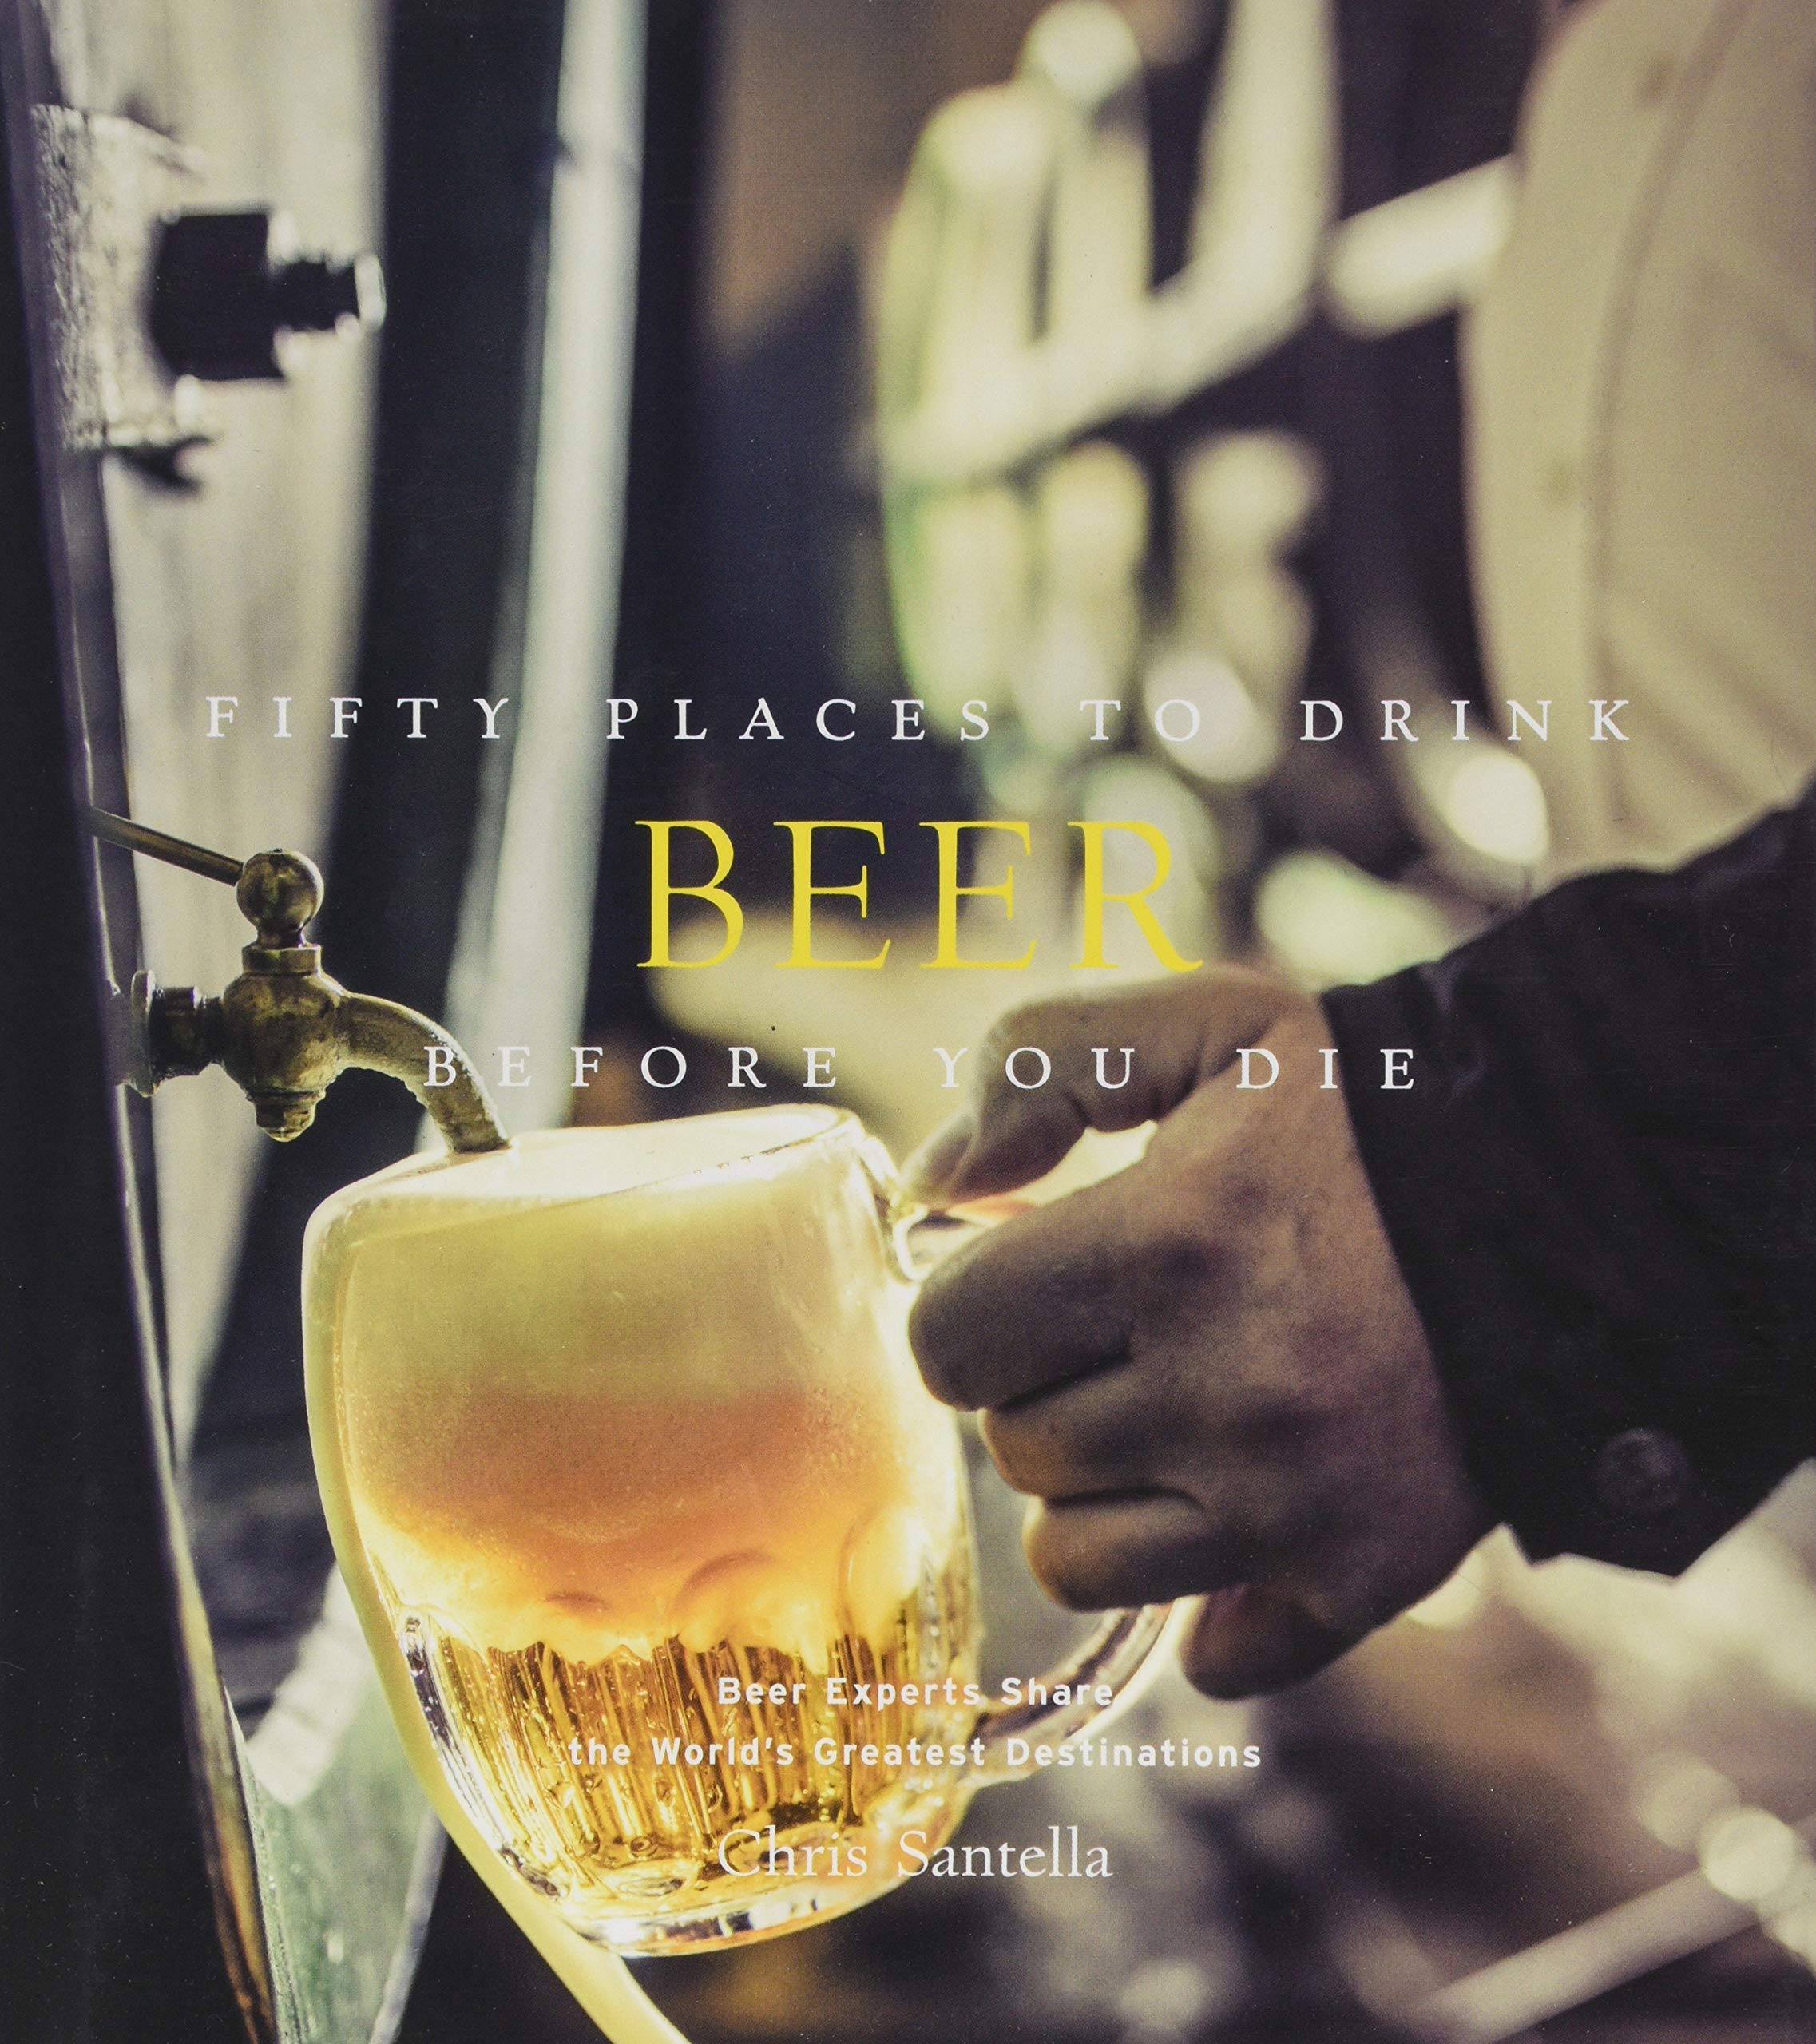 Fifty Places Drink Beer Before product image